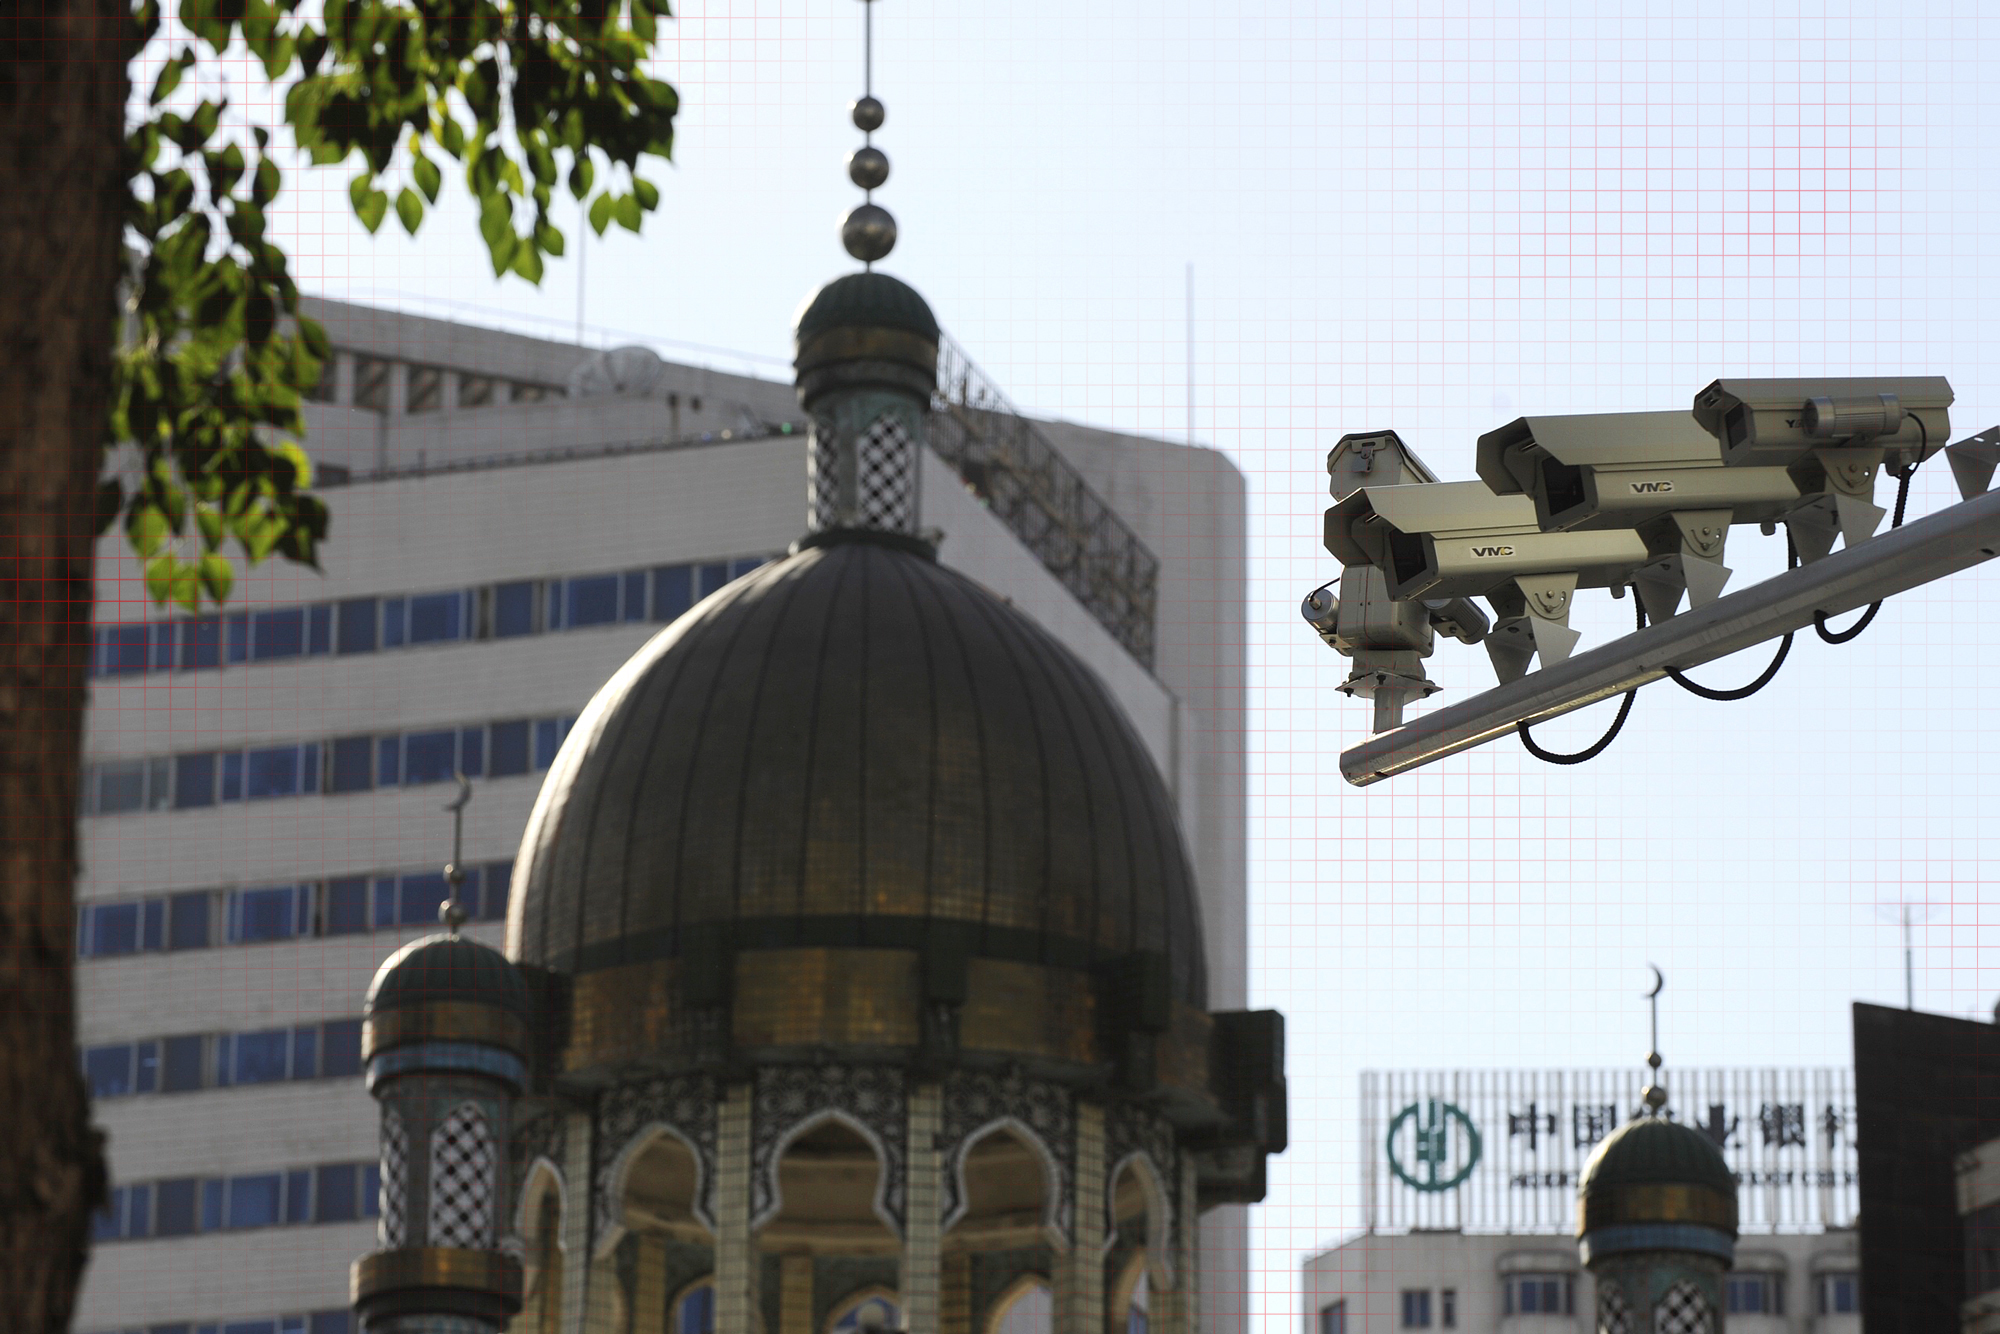 Security cameras are seen (R) on a street in Urumqi, capital of China's Xinjiang region on July 2, 2010.